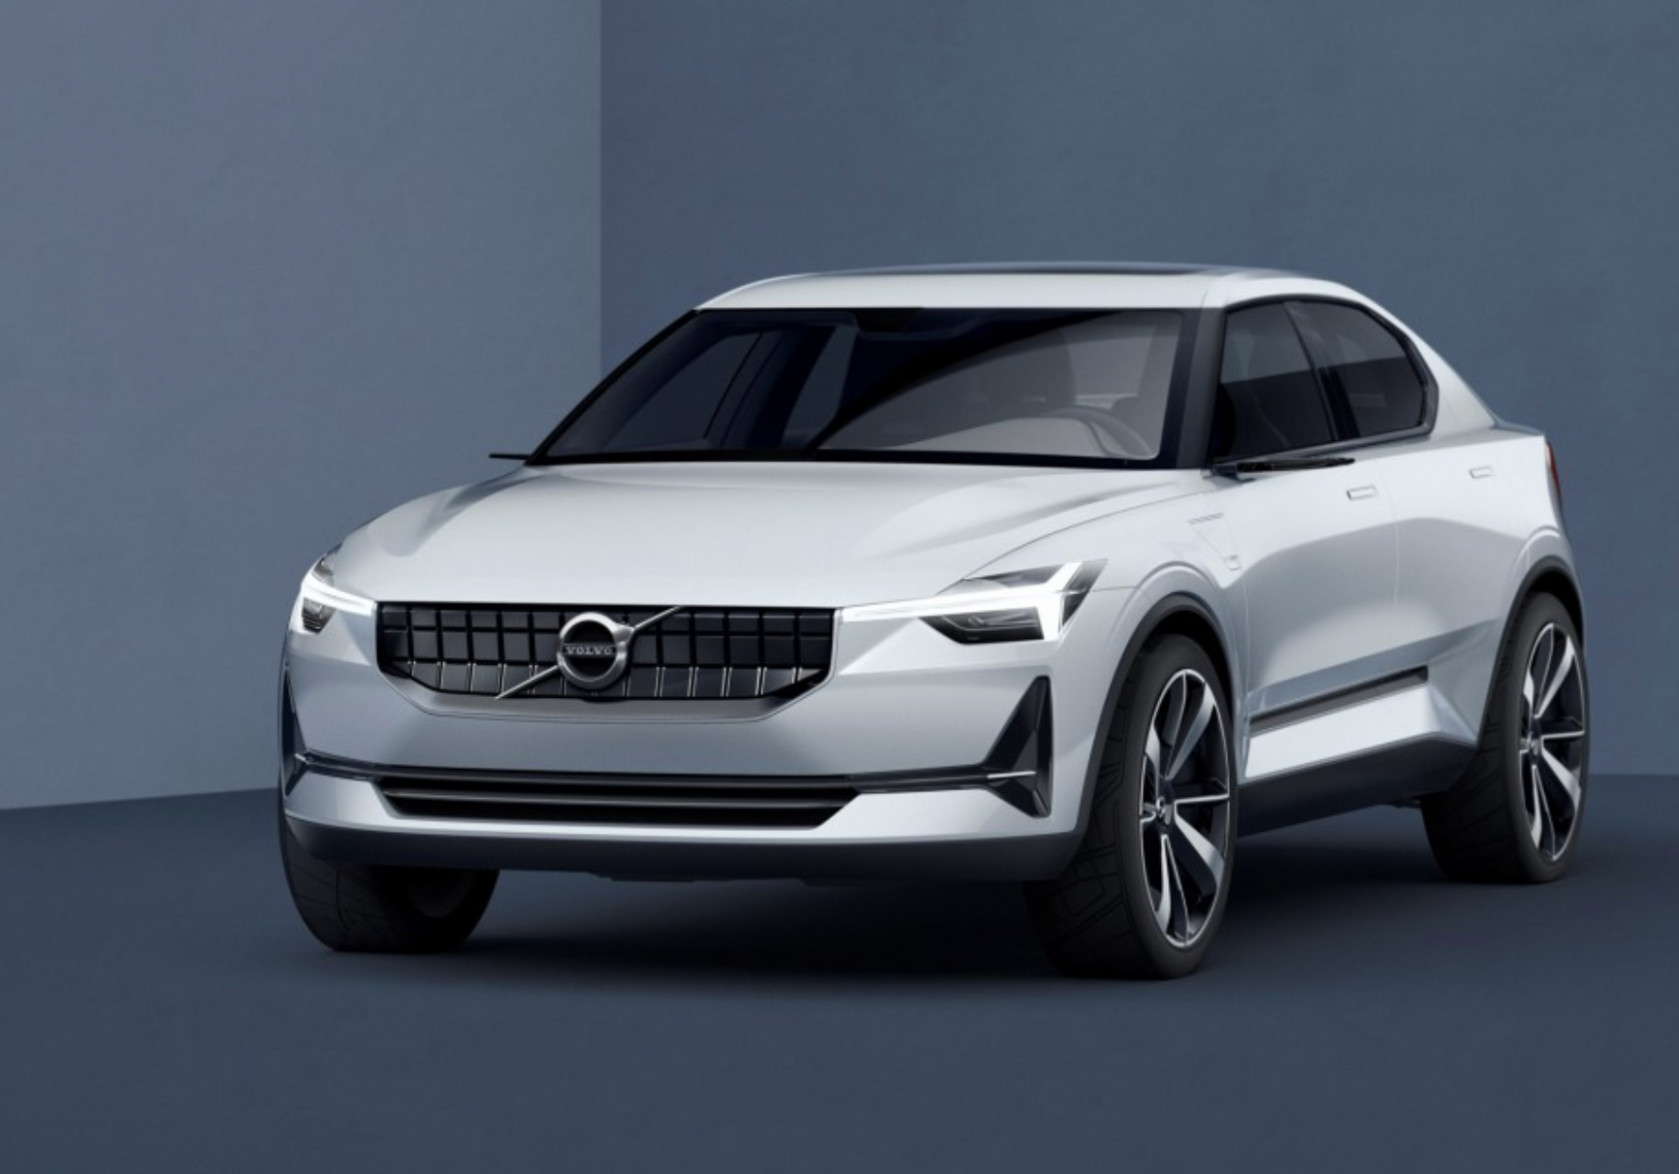 8 Gallery of Volvo All Electric Cars By 8 Exterior by Volvo ..